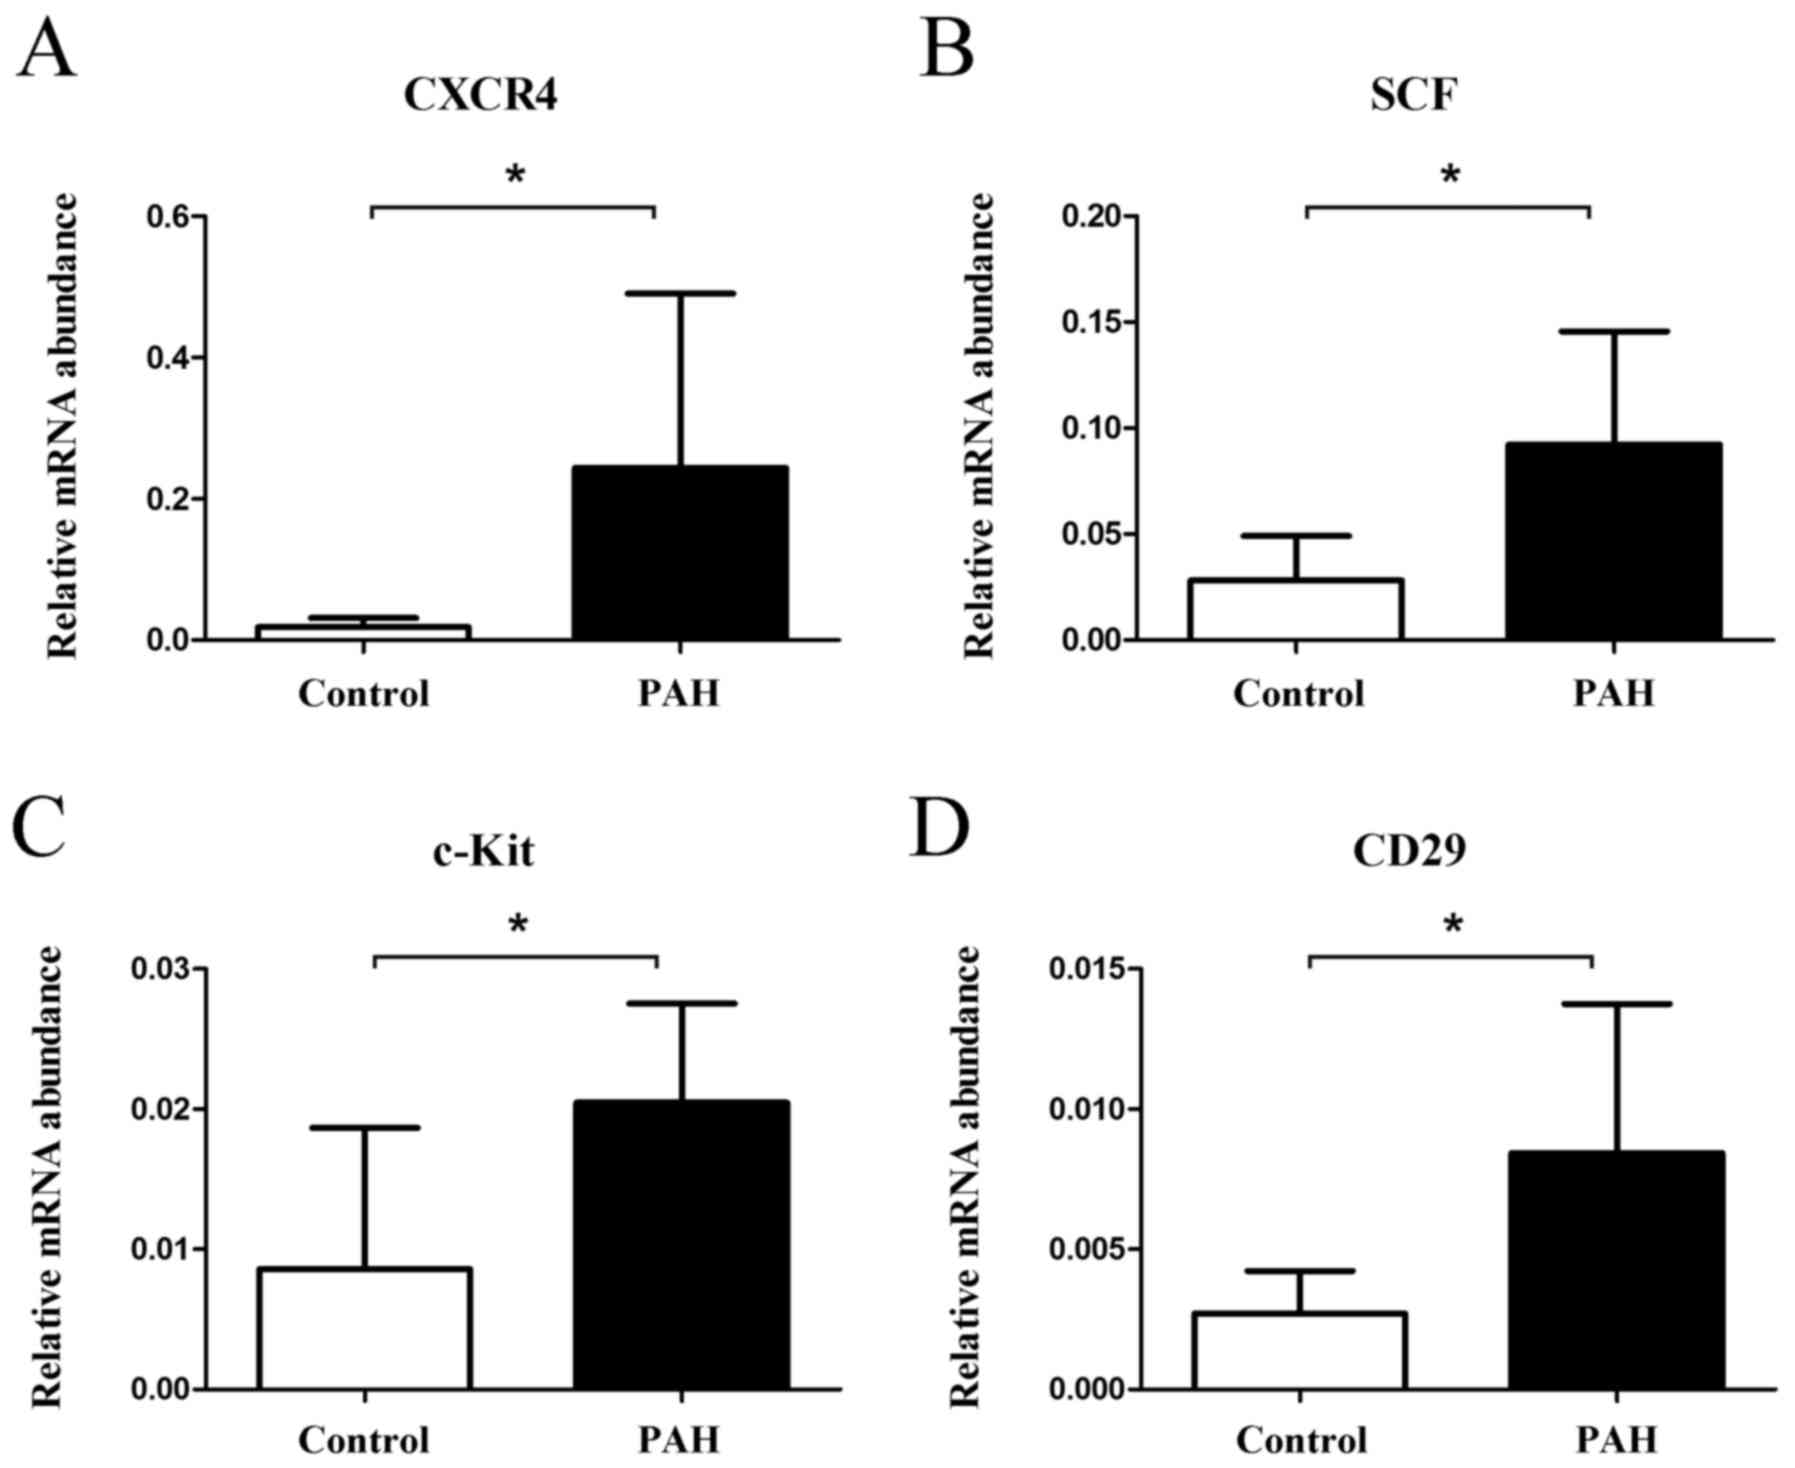 High expression of CXCR4 and stem cell markers in a